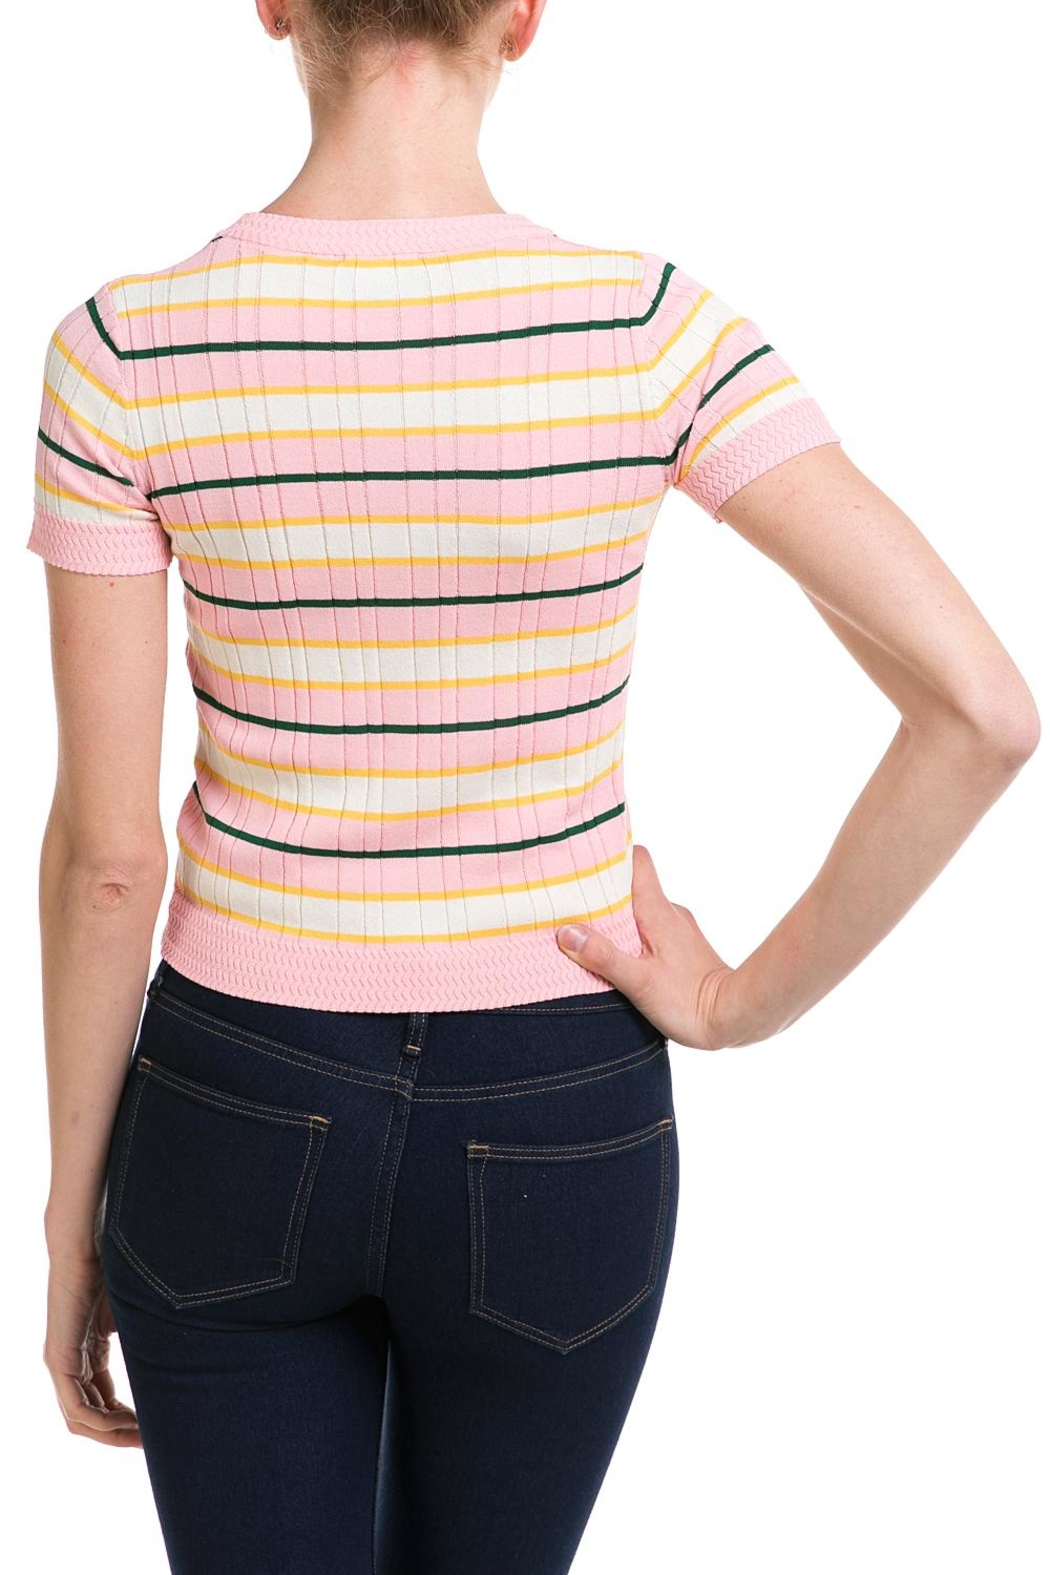 Lumiere Striped Knit Top - Back Cropped Image